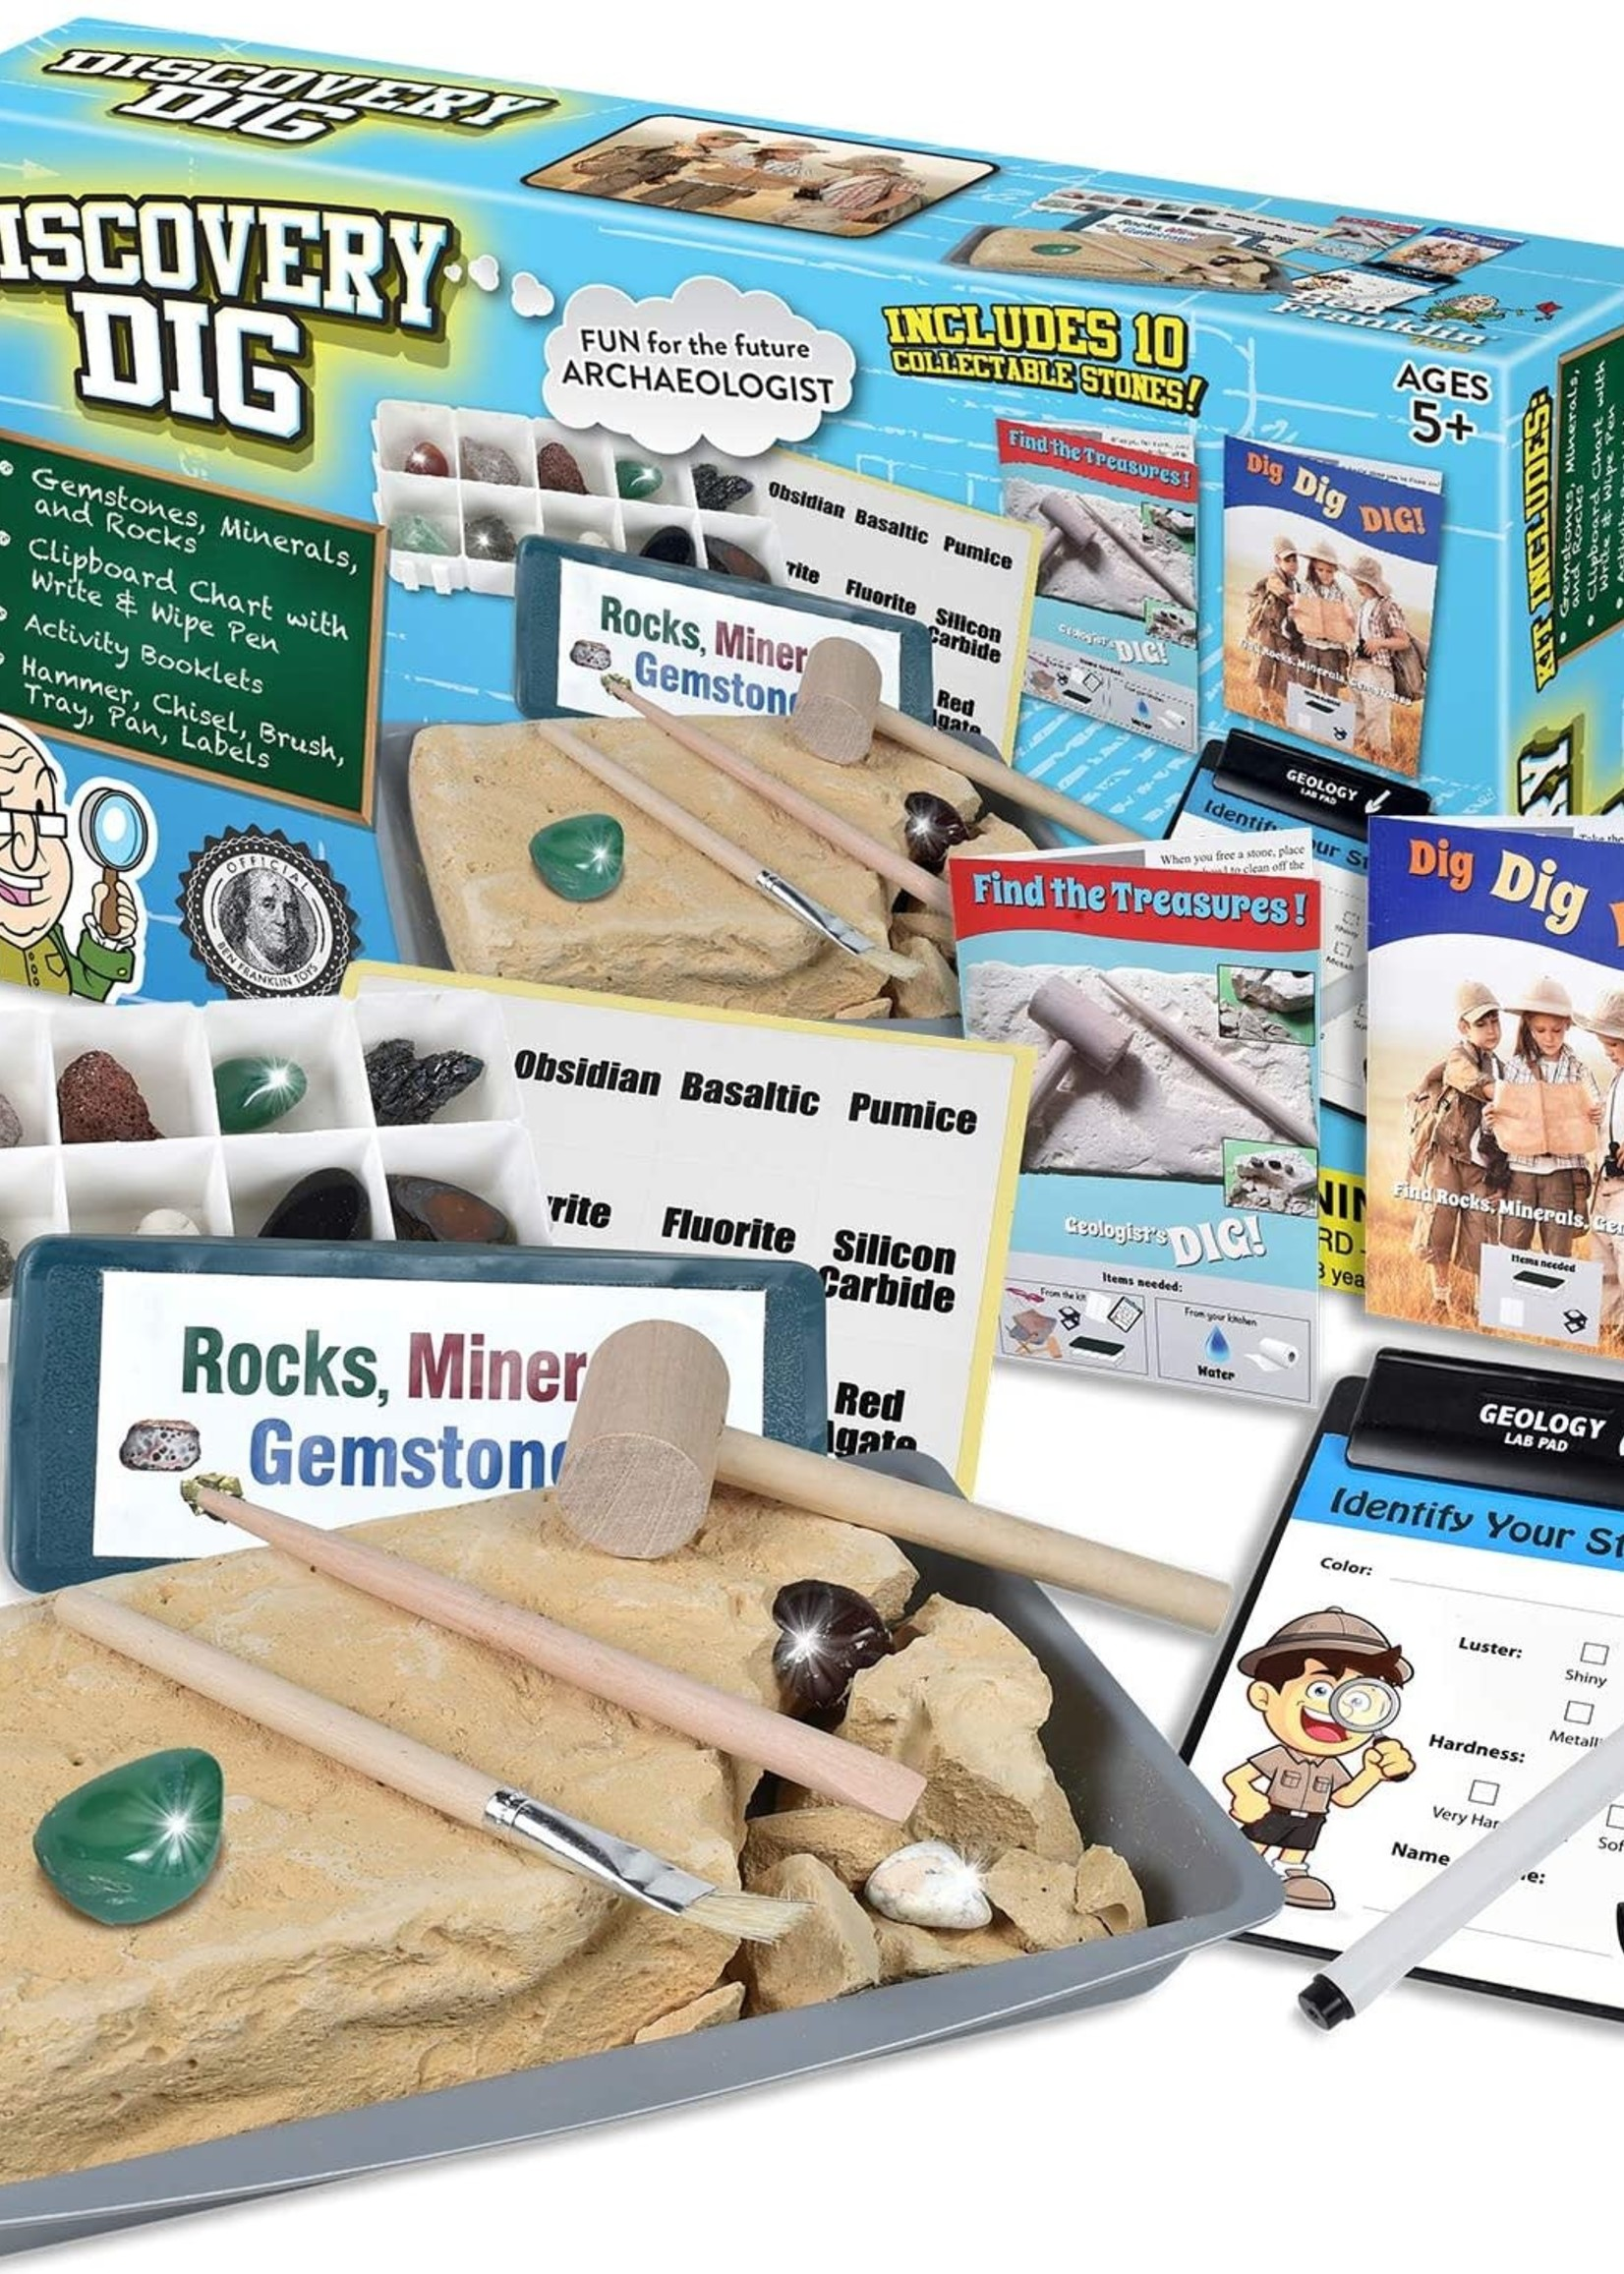 Ben Franklin Toys- Discovery Dig